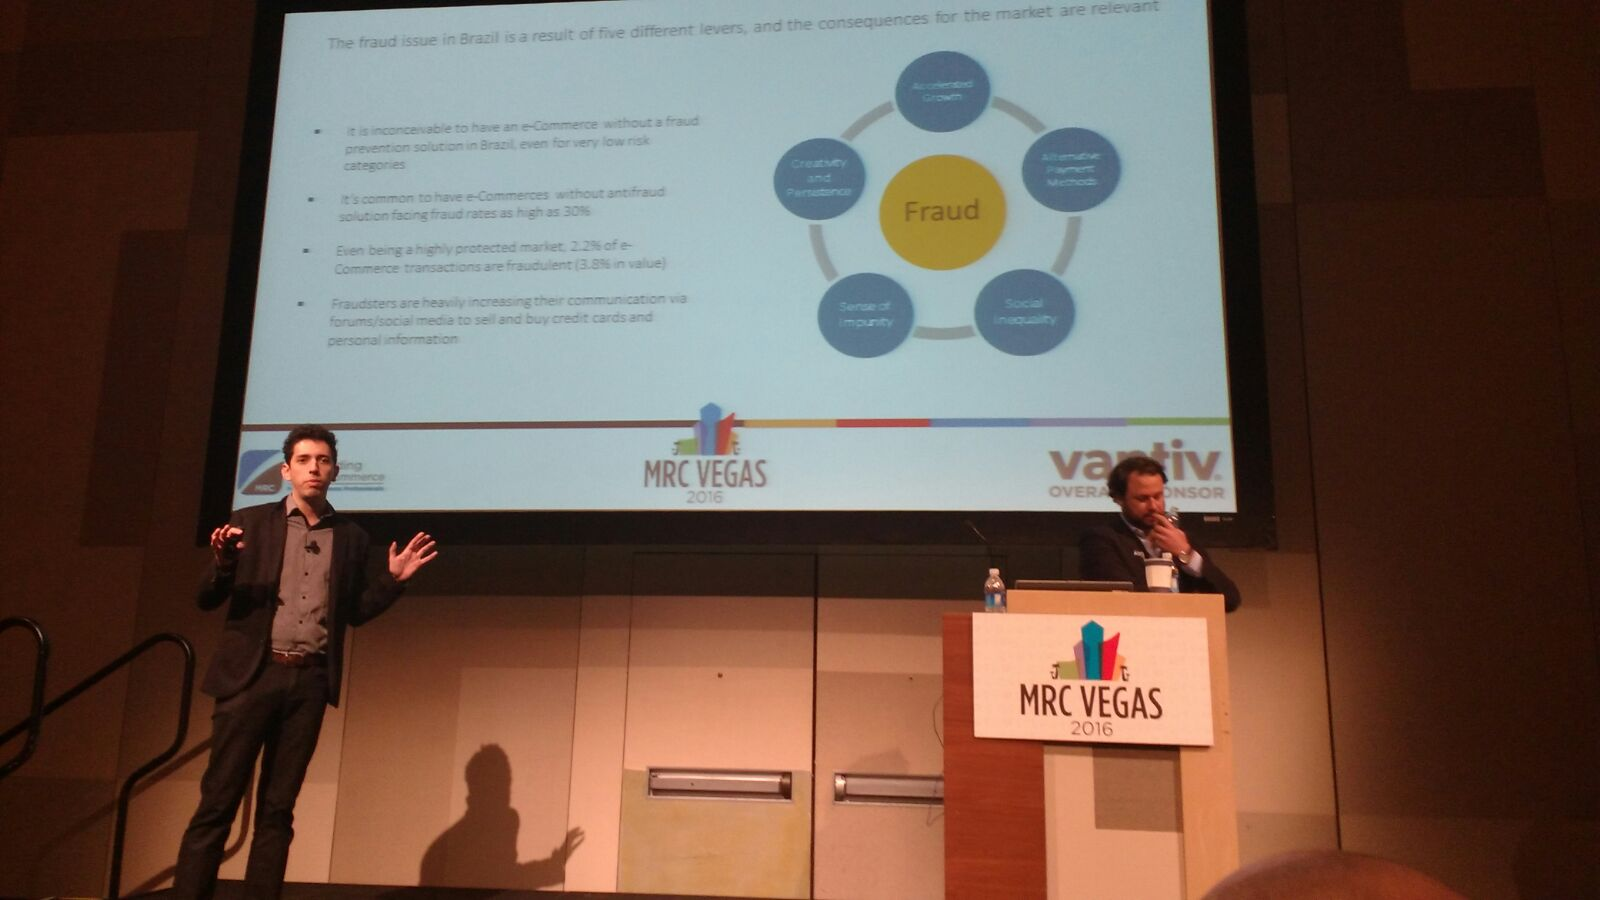 Trends and Takeaways from MRC Vegas 2016